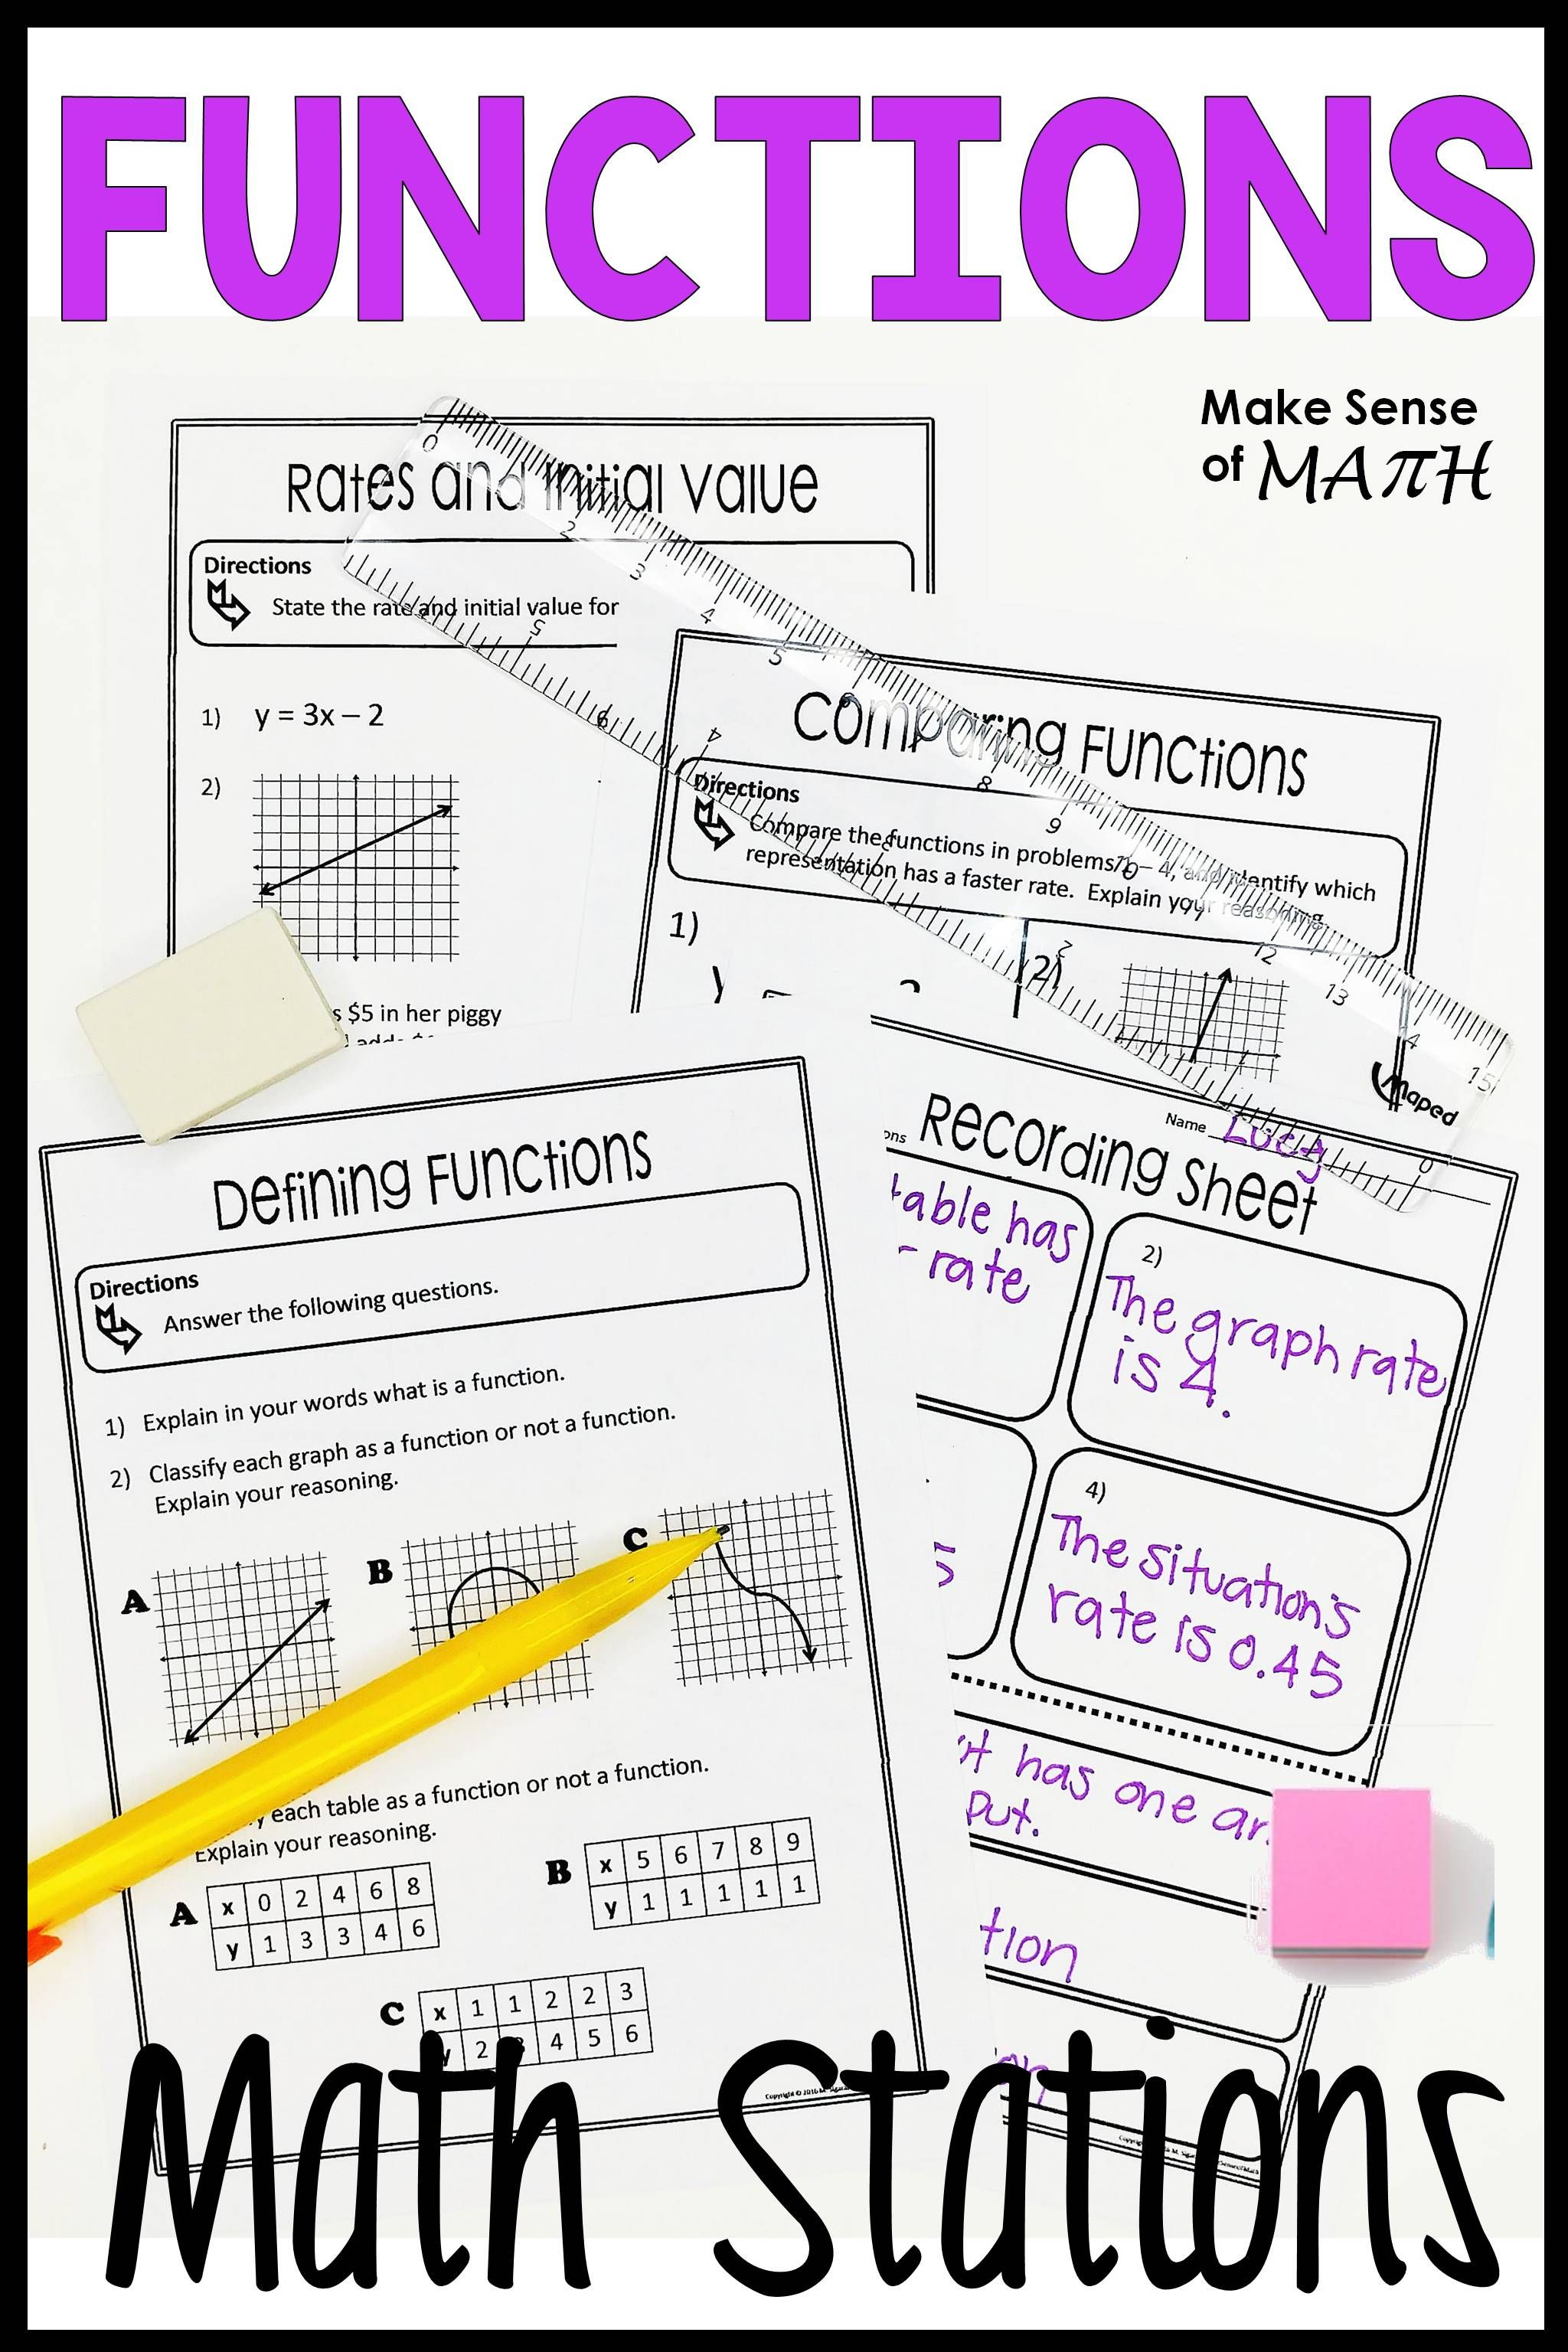 Functions Stations